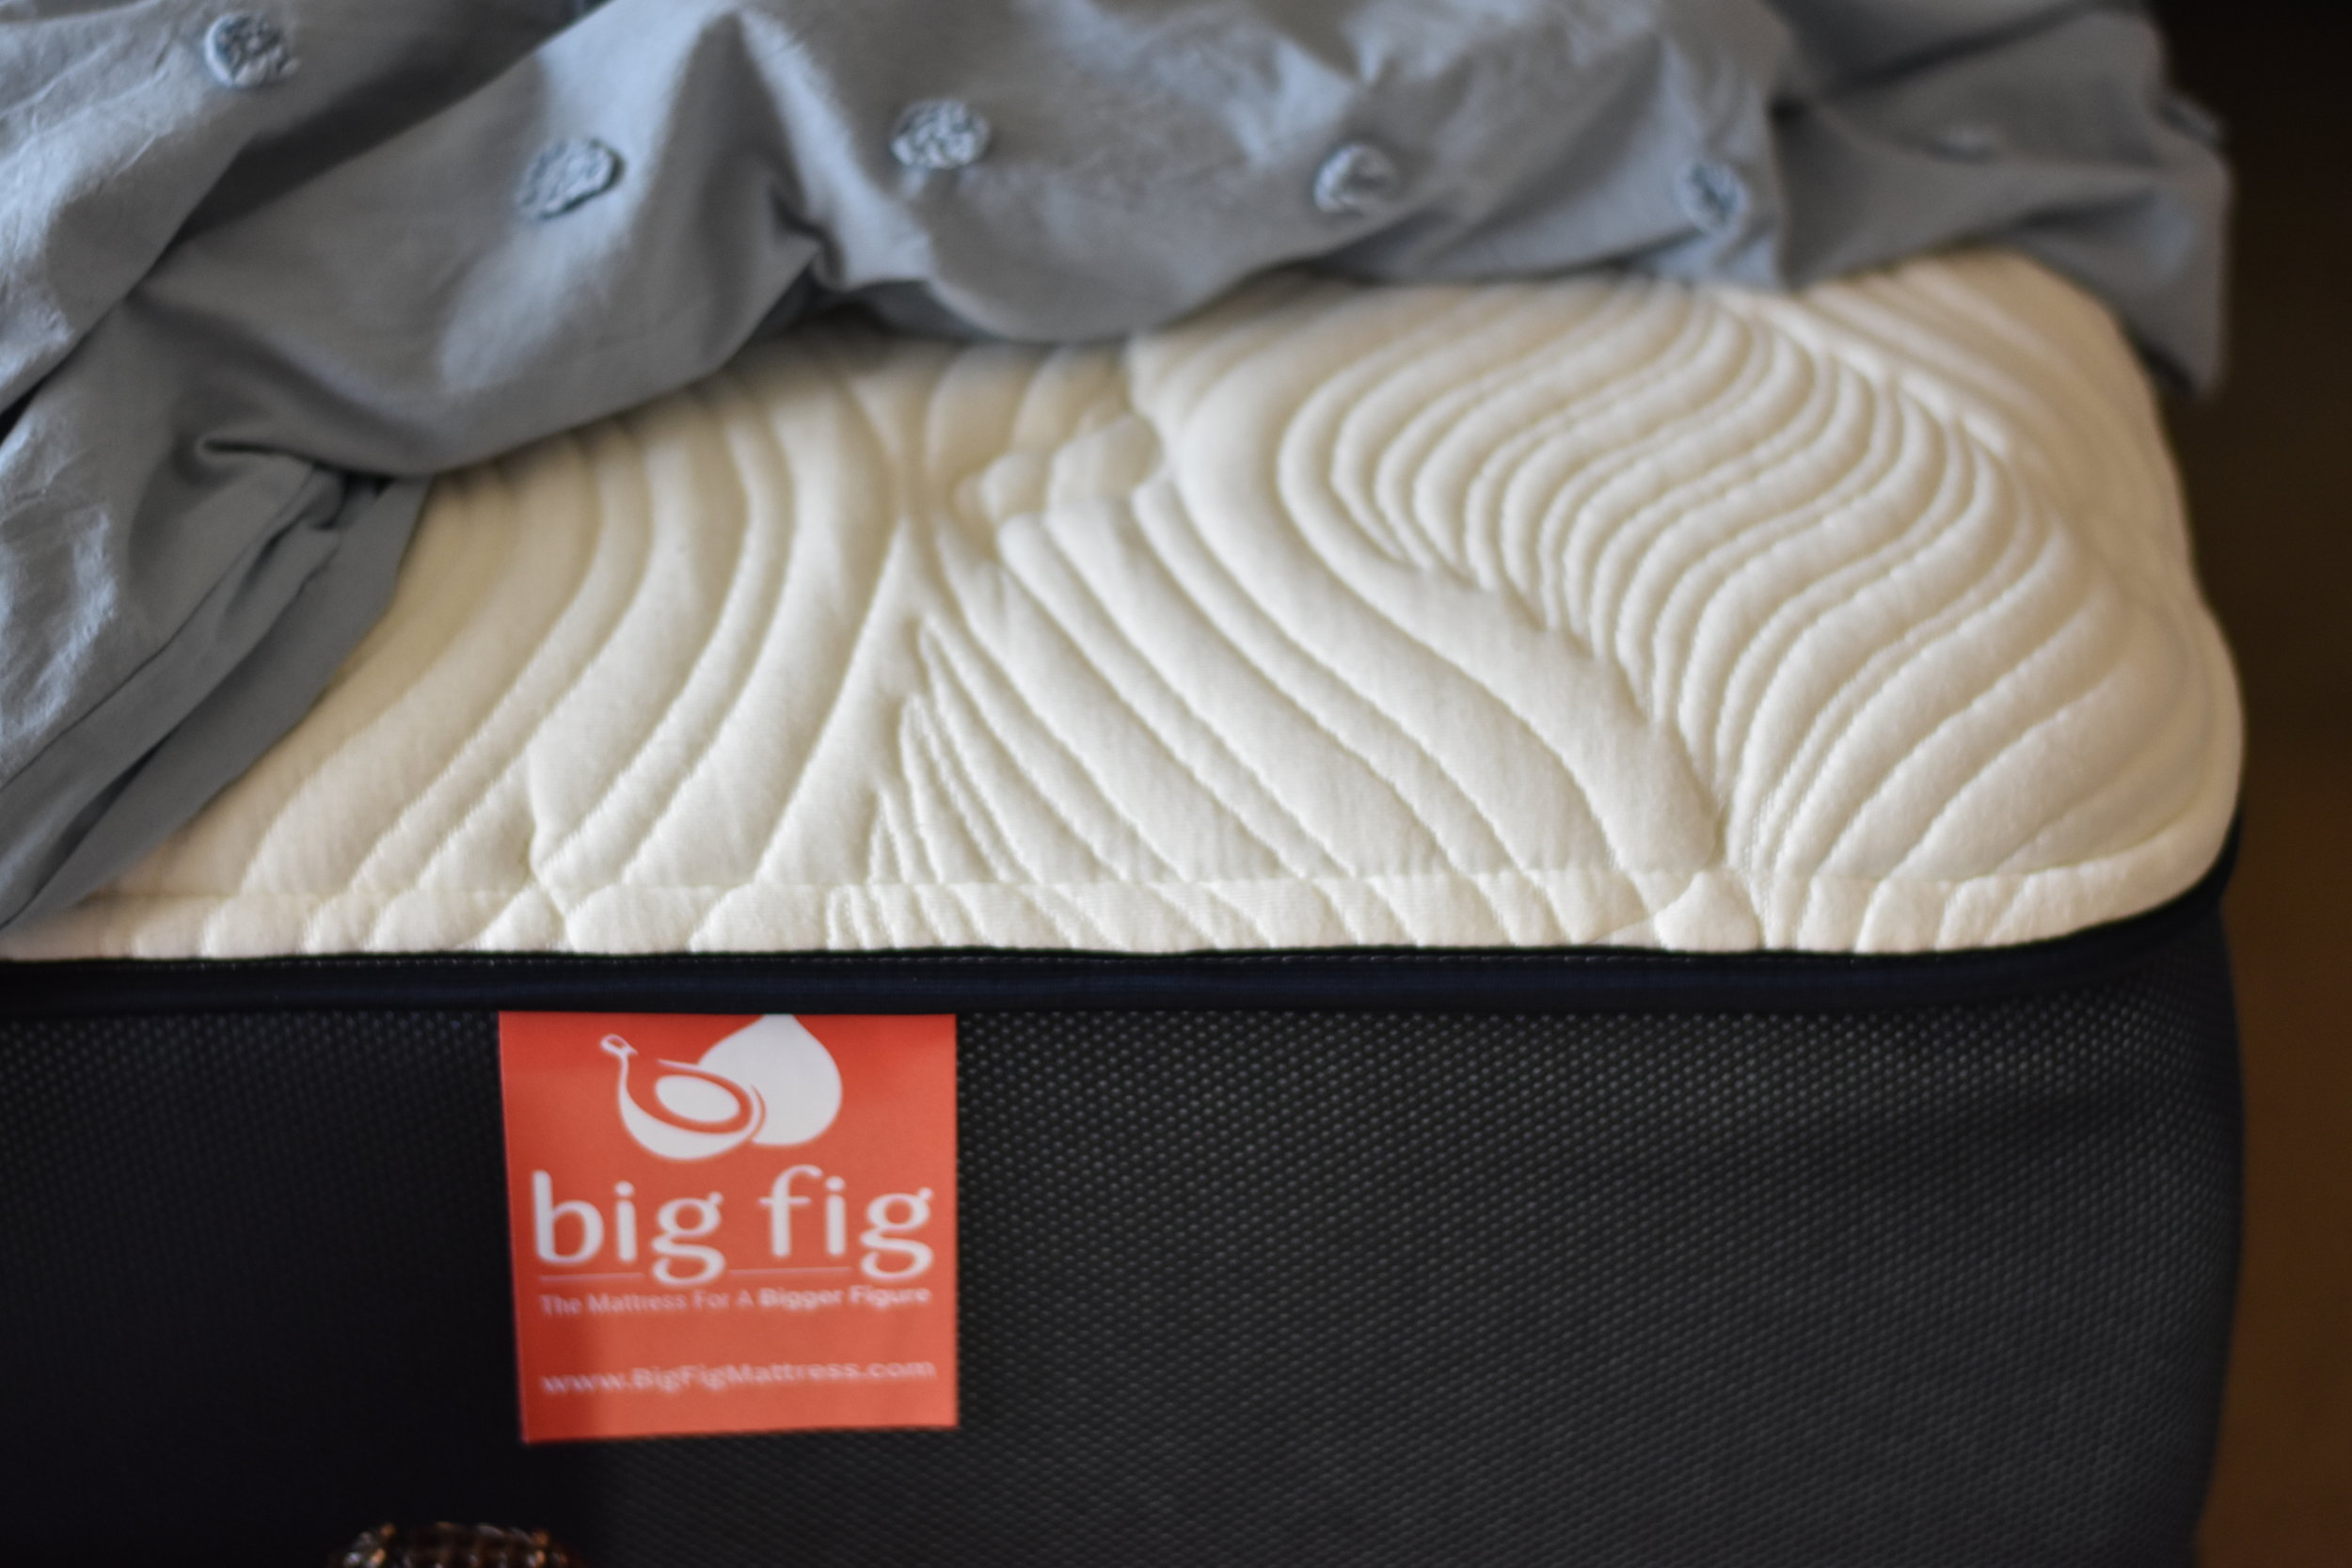 Big Fig Mattress designed to support up to 1,000 pounds!